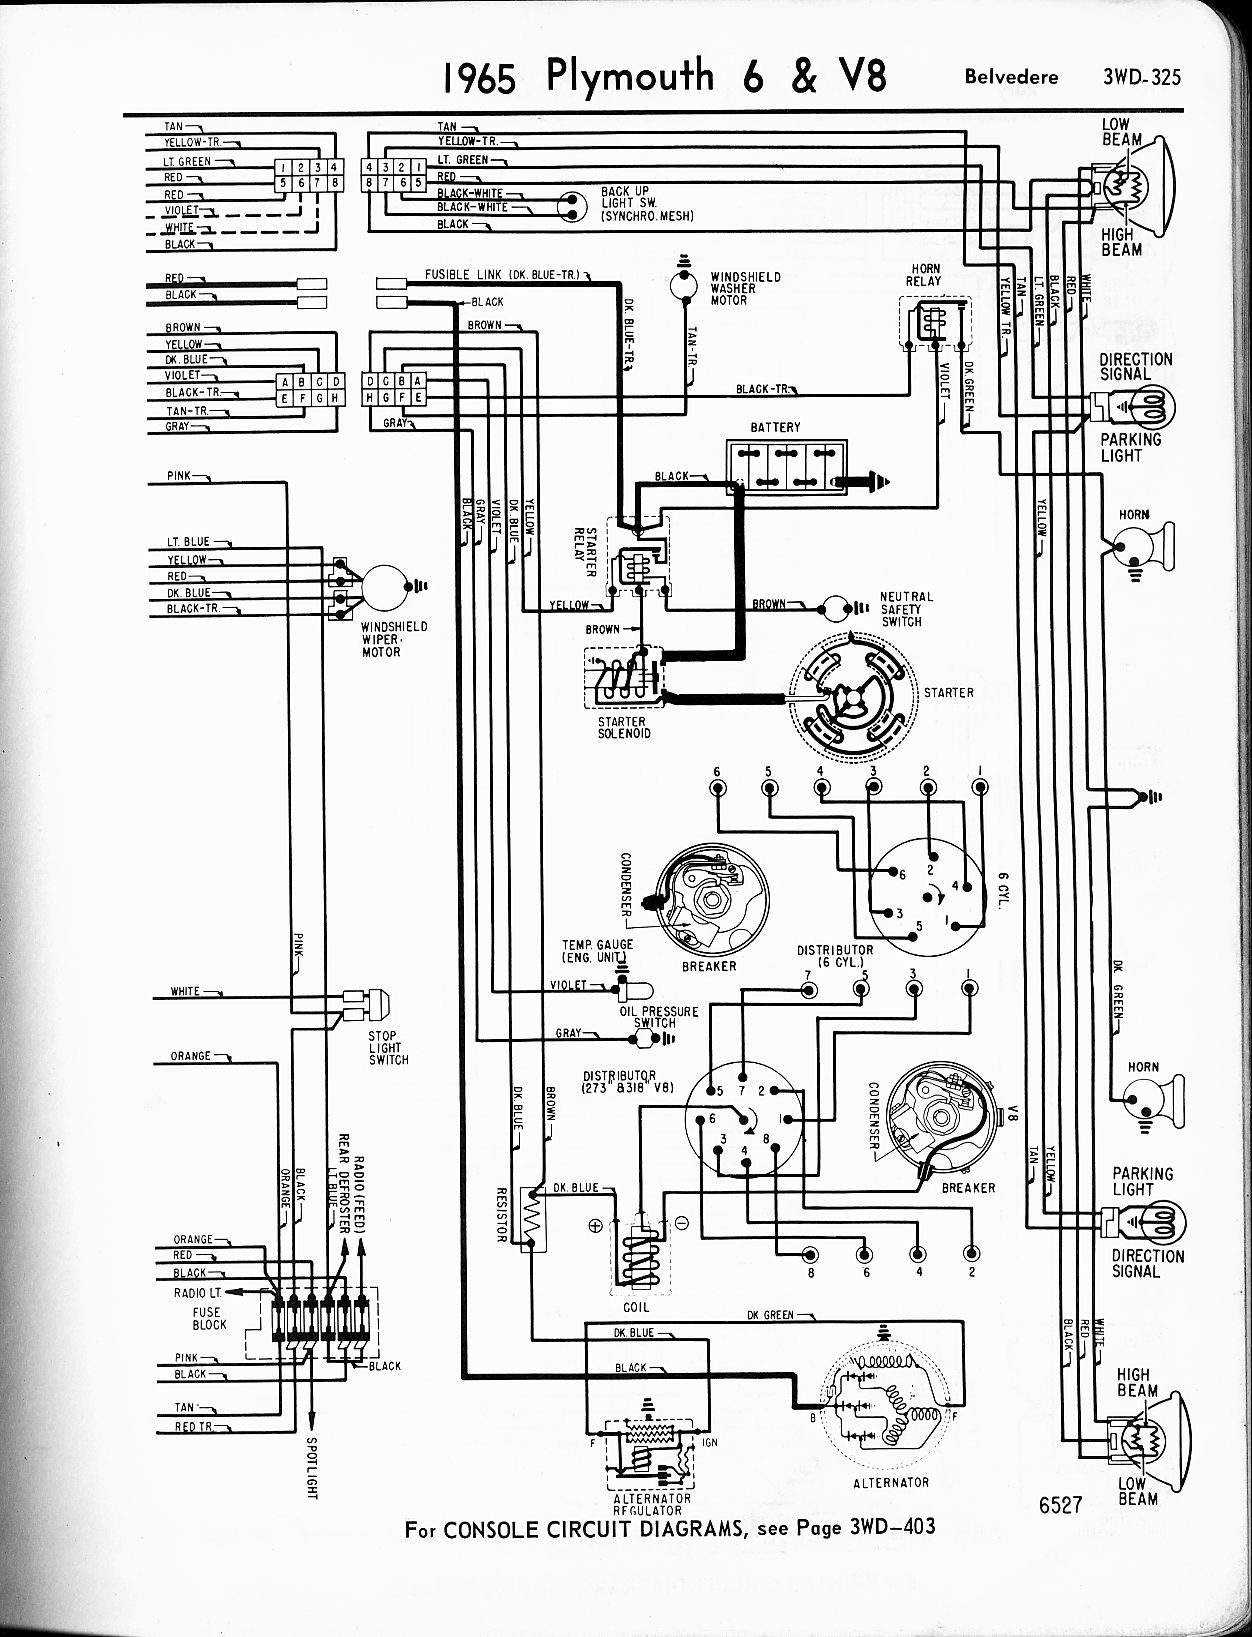 1956 1965 plymouth wiring the old car manual project rh oldcarmanualproject wiring diagram 47 plymouth positive ground plymouth wiring diagram